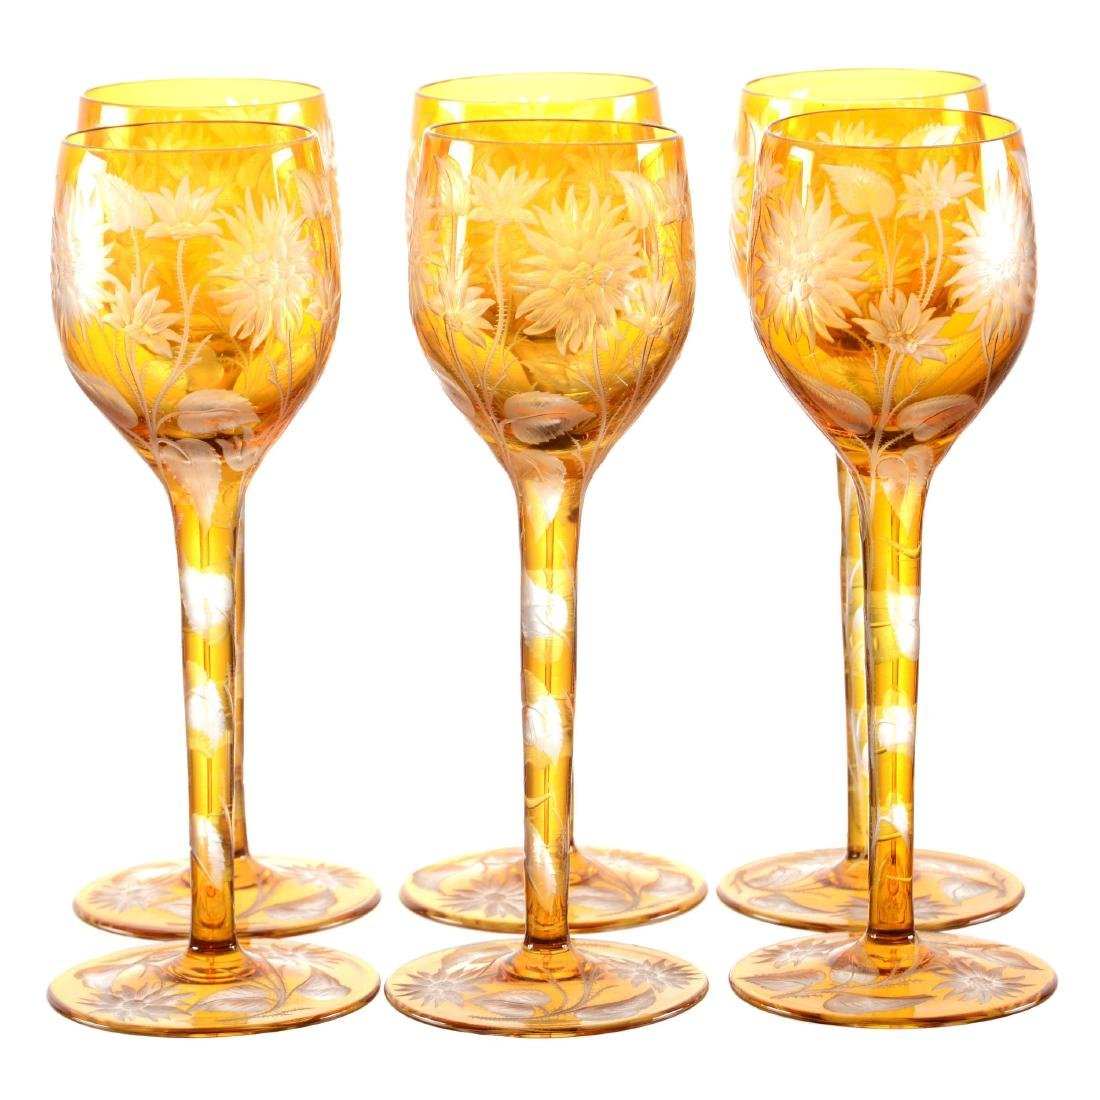 "(6) Rhine Wine Glasses - 8.25"" - Solid Amber to Clear"